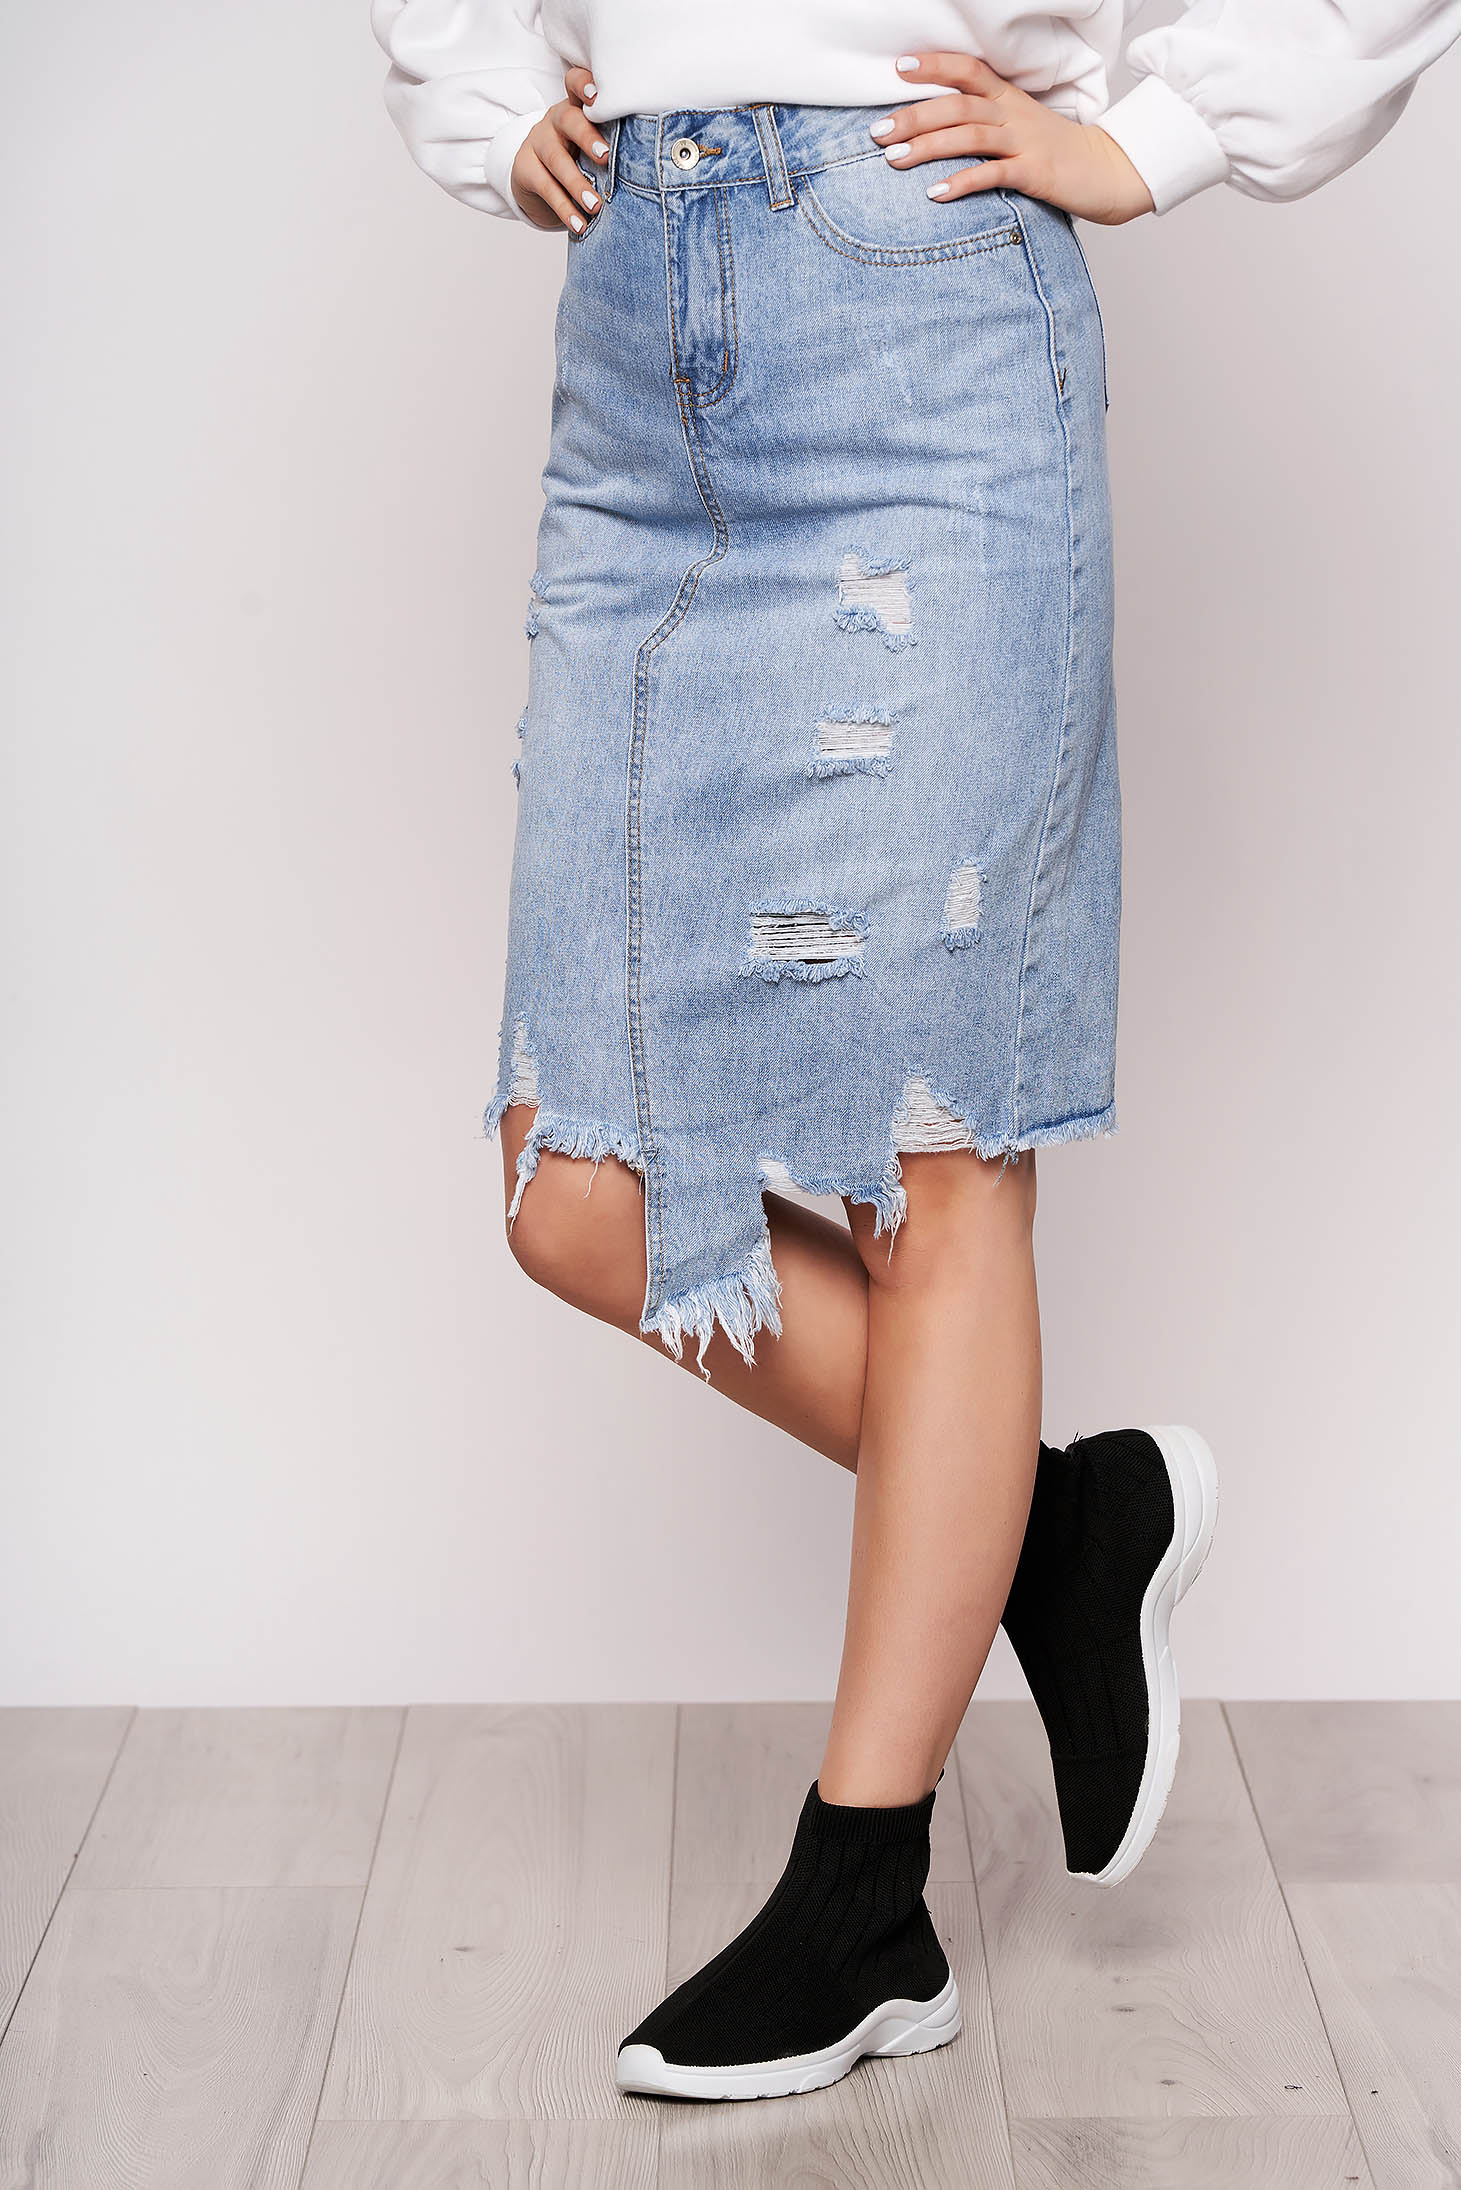 Skirt blue casual midi pencil denim high waisted with ruptures